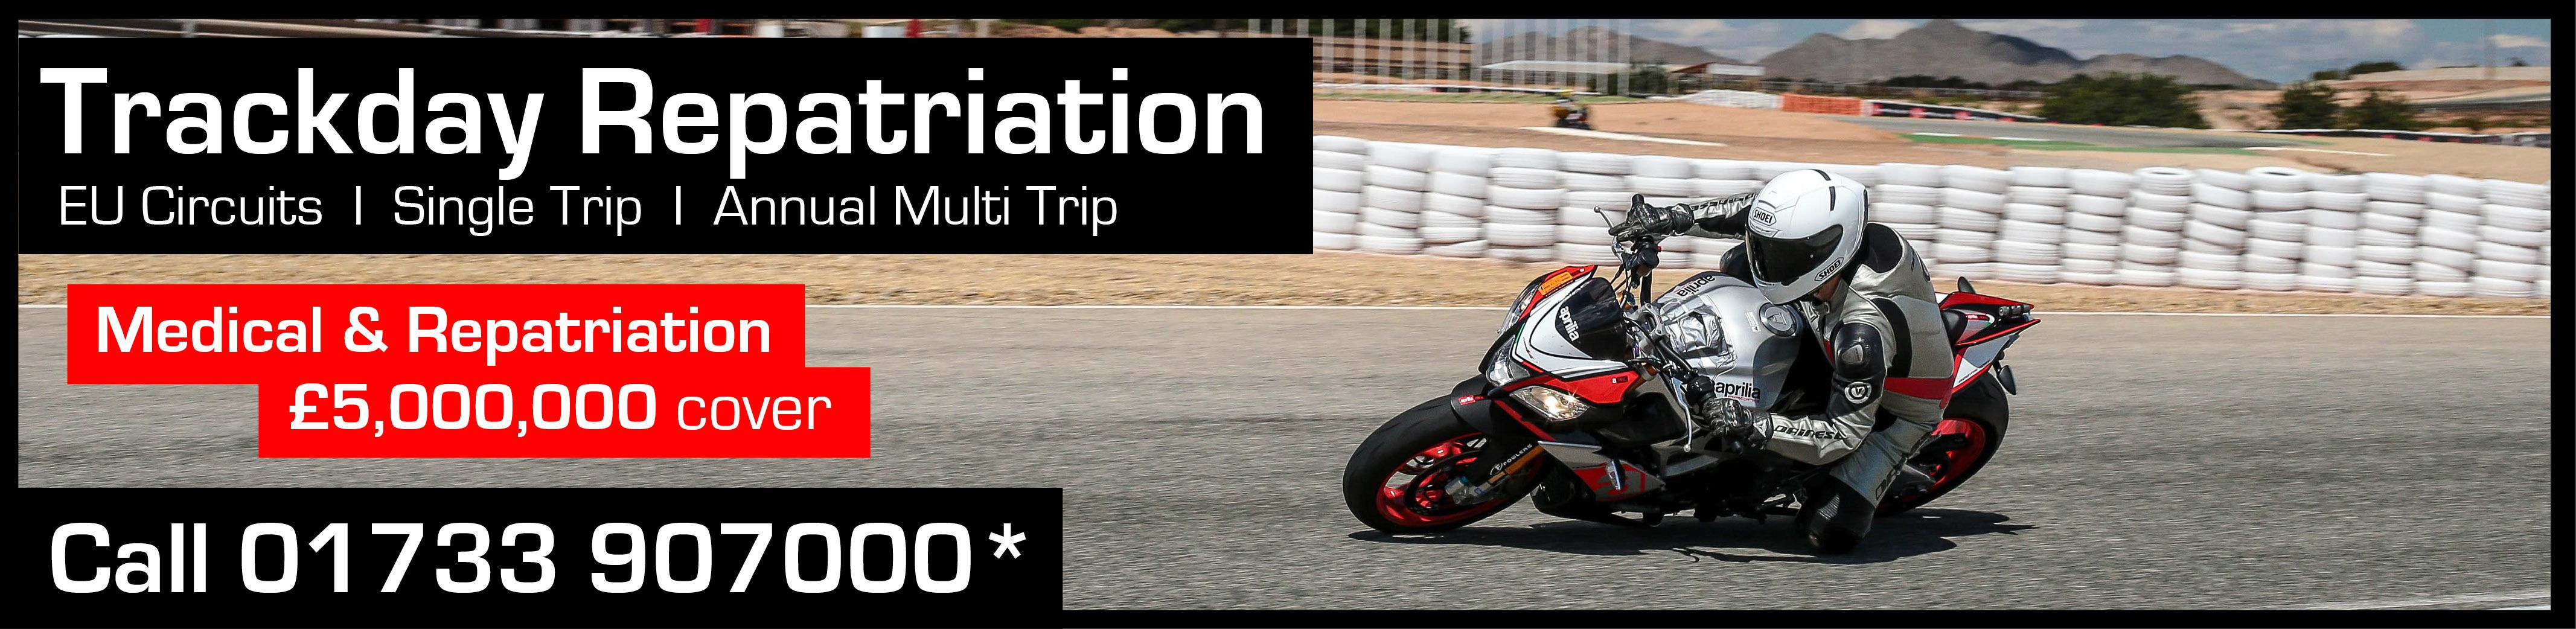 Motorcycle Trackday and Repatriation Insurance